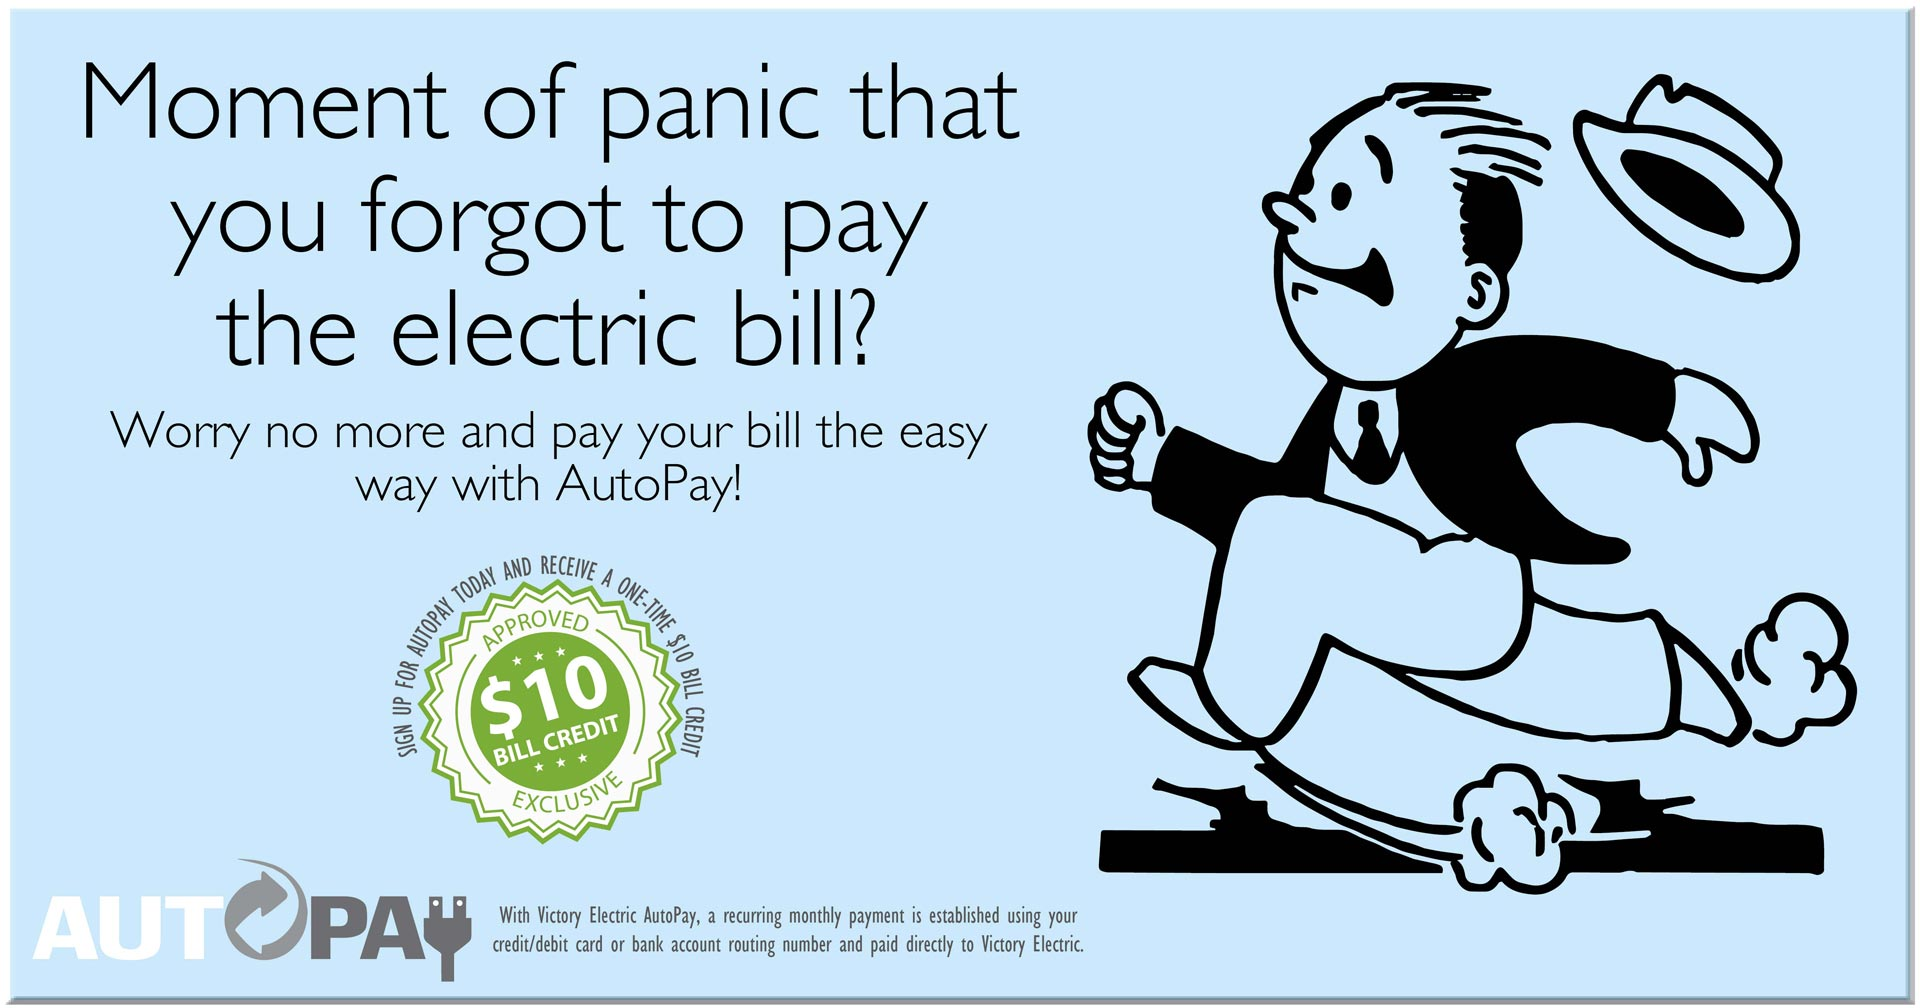 https://www.victoryelectric.net/sites/victoryelectric/files/revslider/image/Panic-AutoPay-Meme-resize.jpg